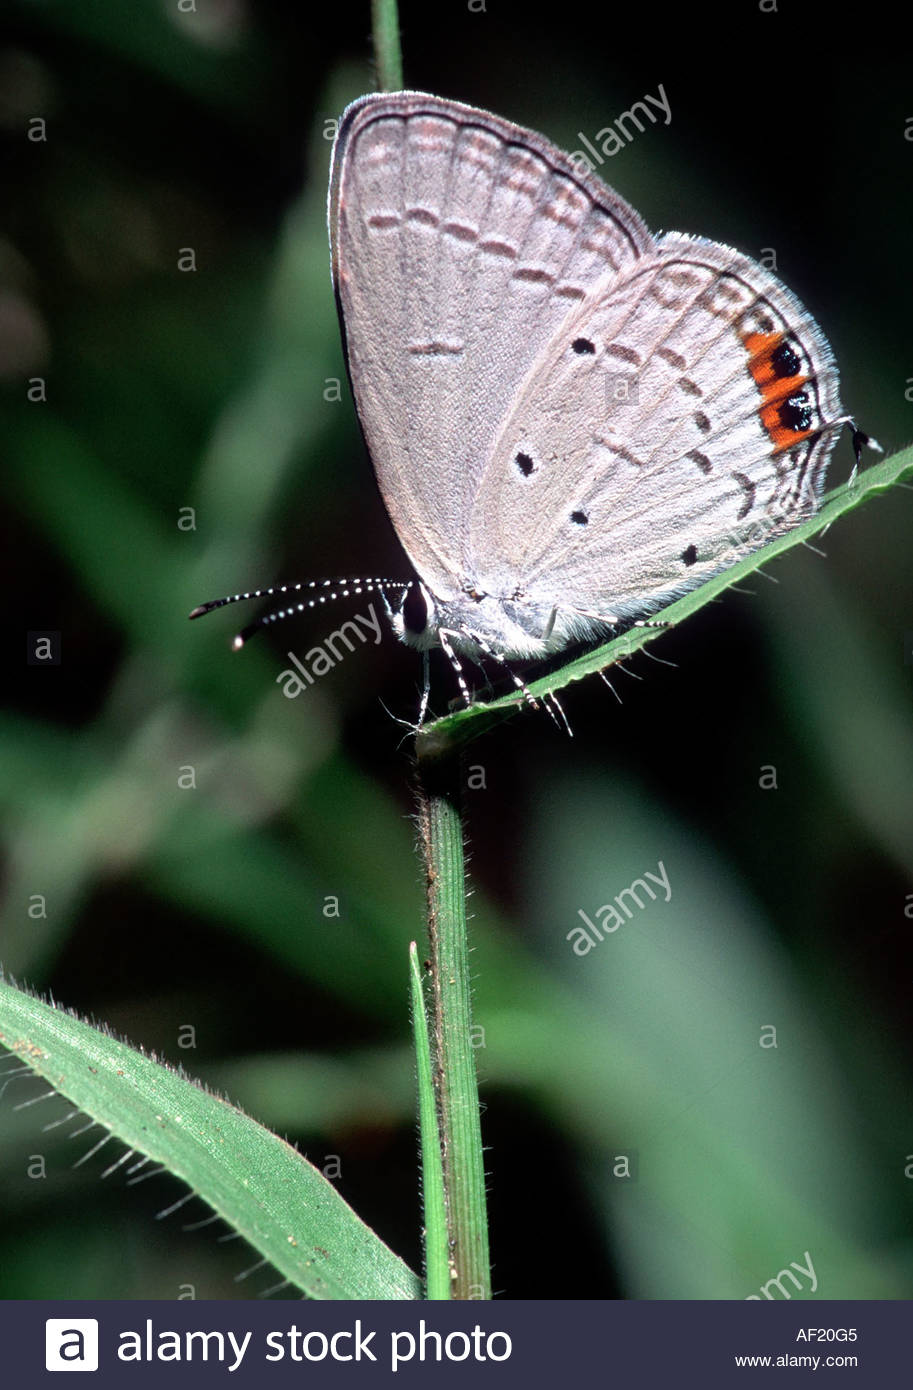 INDIAN CUPID LYCAENIDAE SOUTH INDIA Stock Photo: 7888388 - Alamy